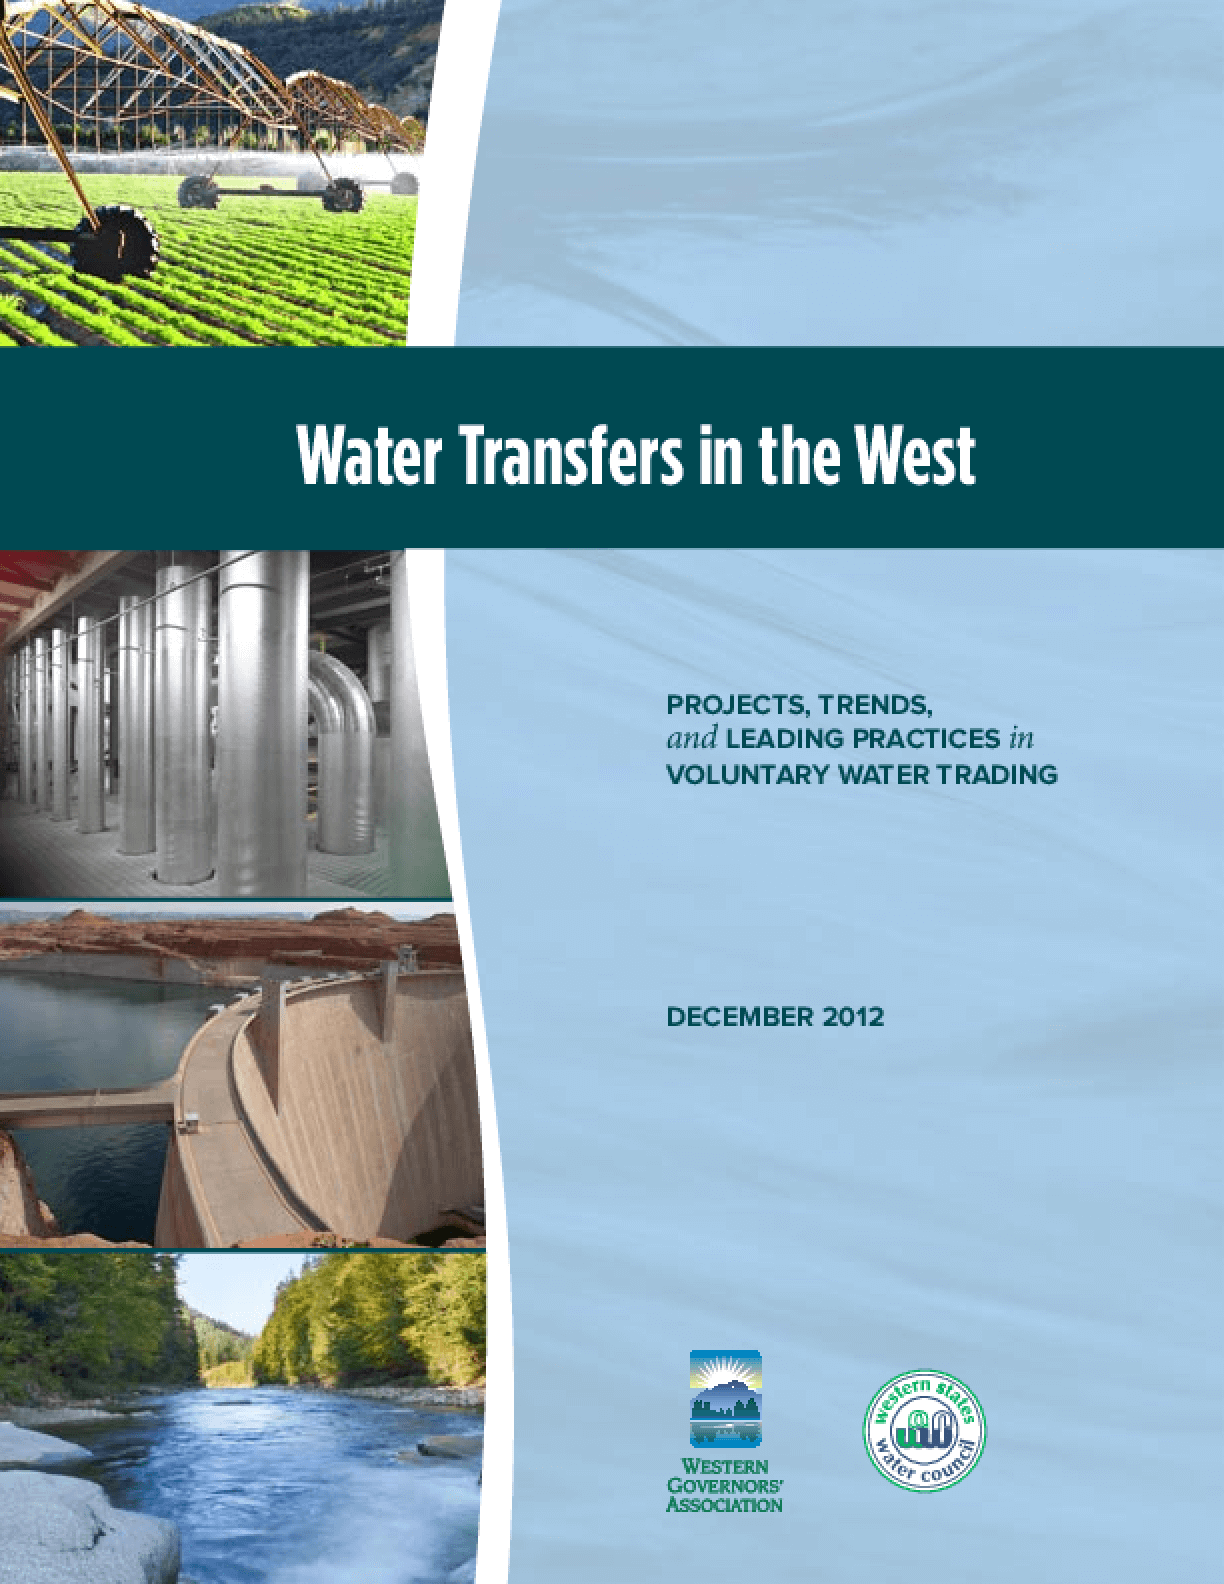 Water Transfers in the West: Projects, Trends, and Leading Practices in Voluntary Water Trading